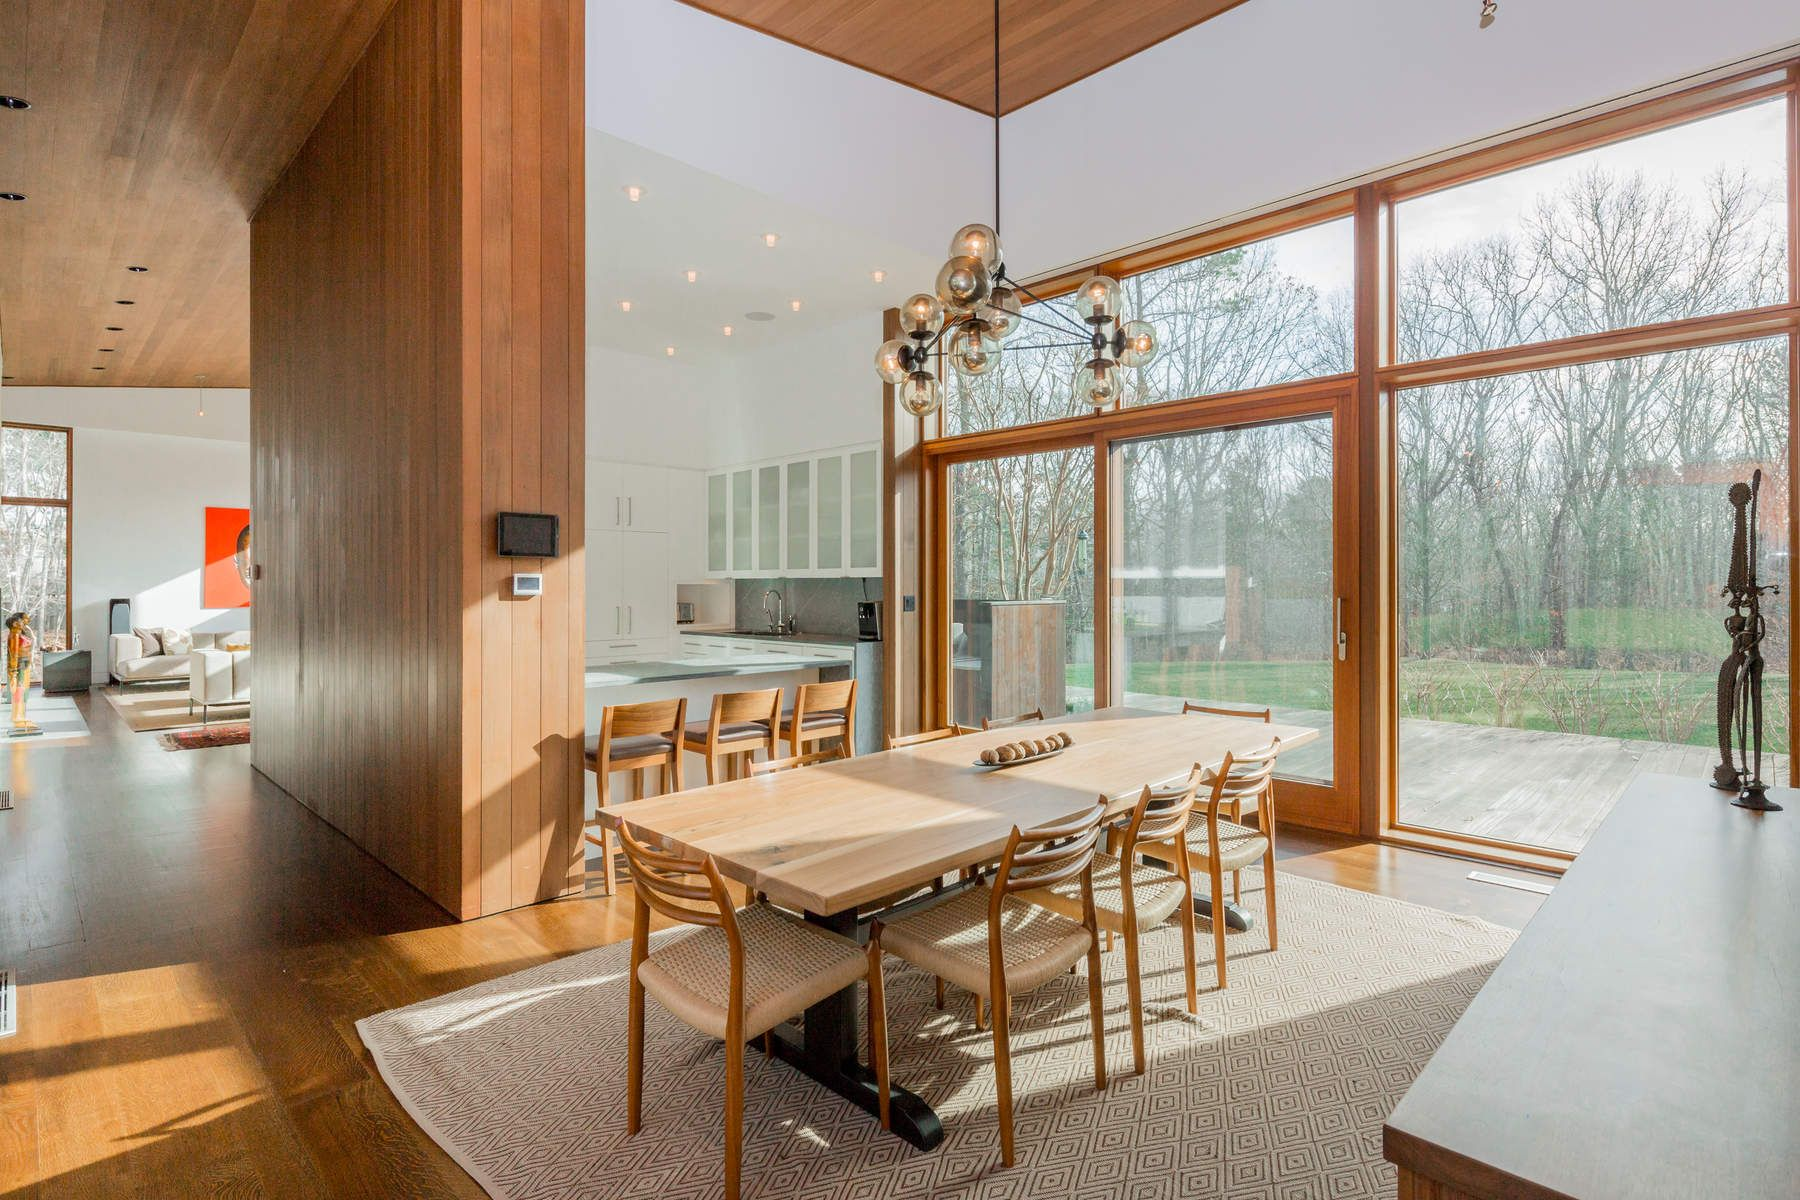 Single Family Home for Rent at Stunning Glass Modern in Water Mill Water Mill, New York 11976 United States